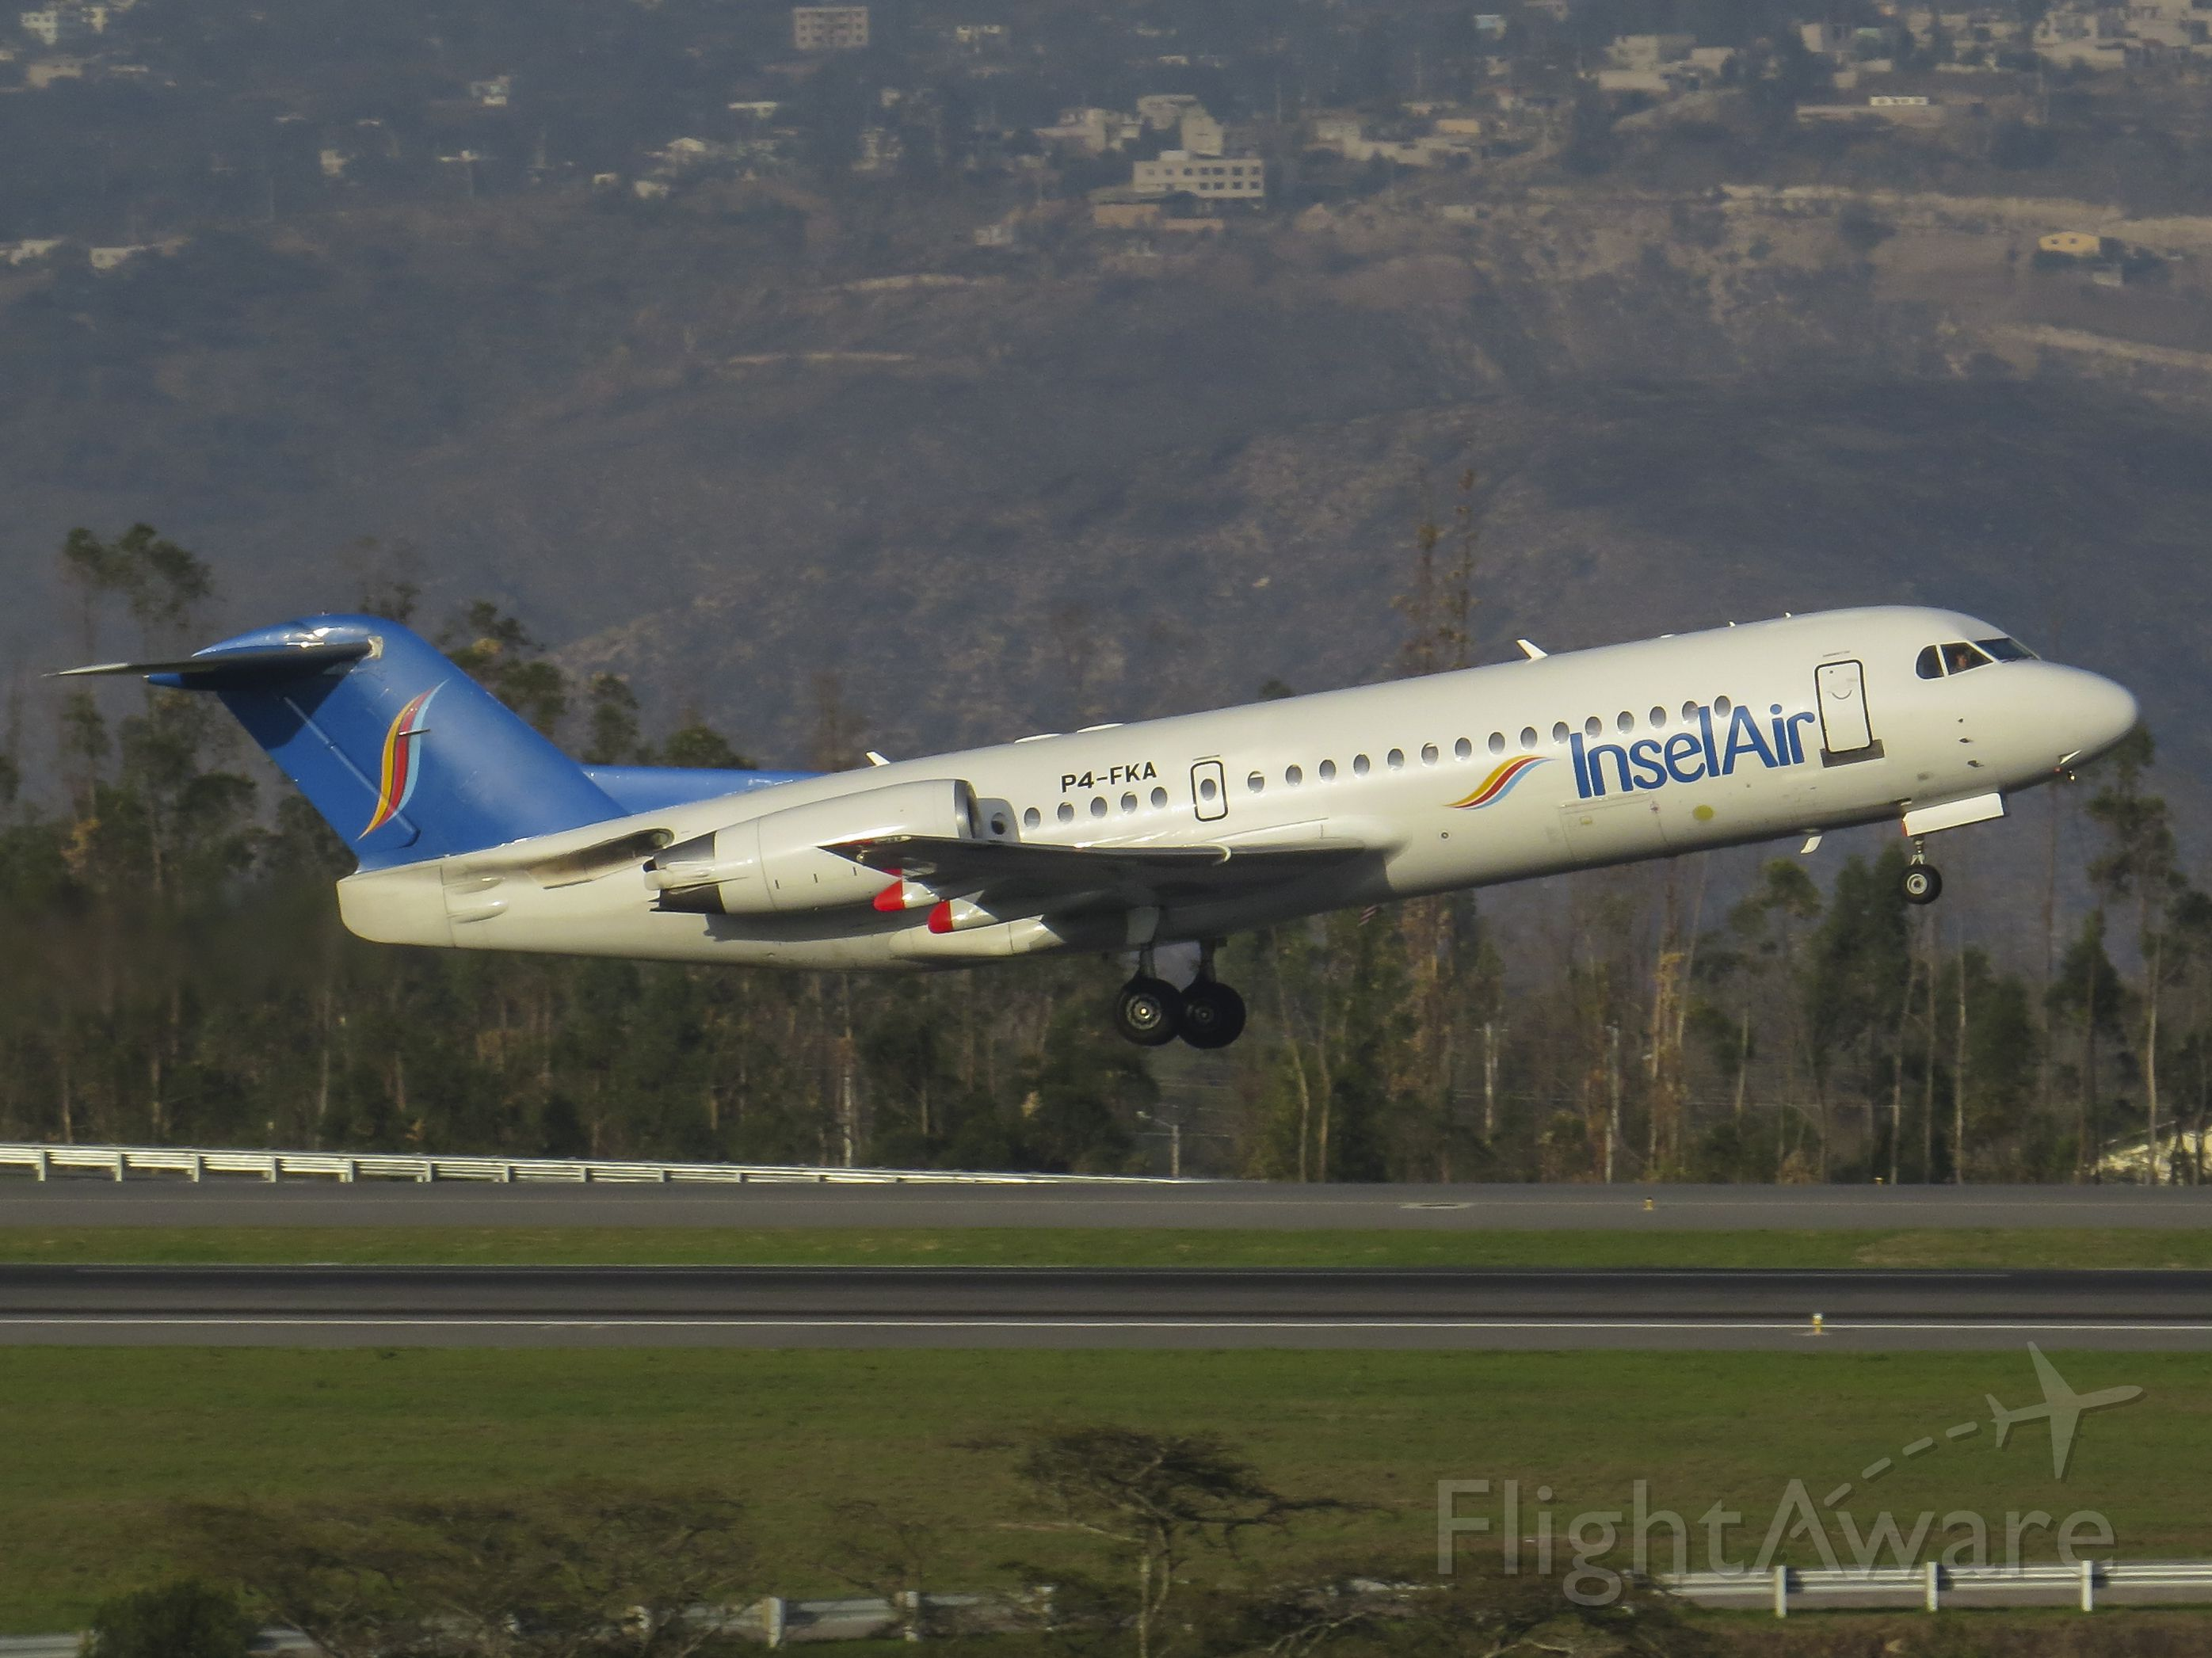 Fokker 70 (P4-FKA) - First flight of this airline to Quito